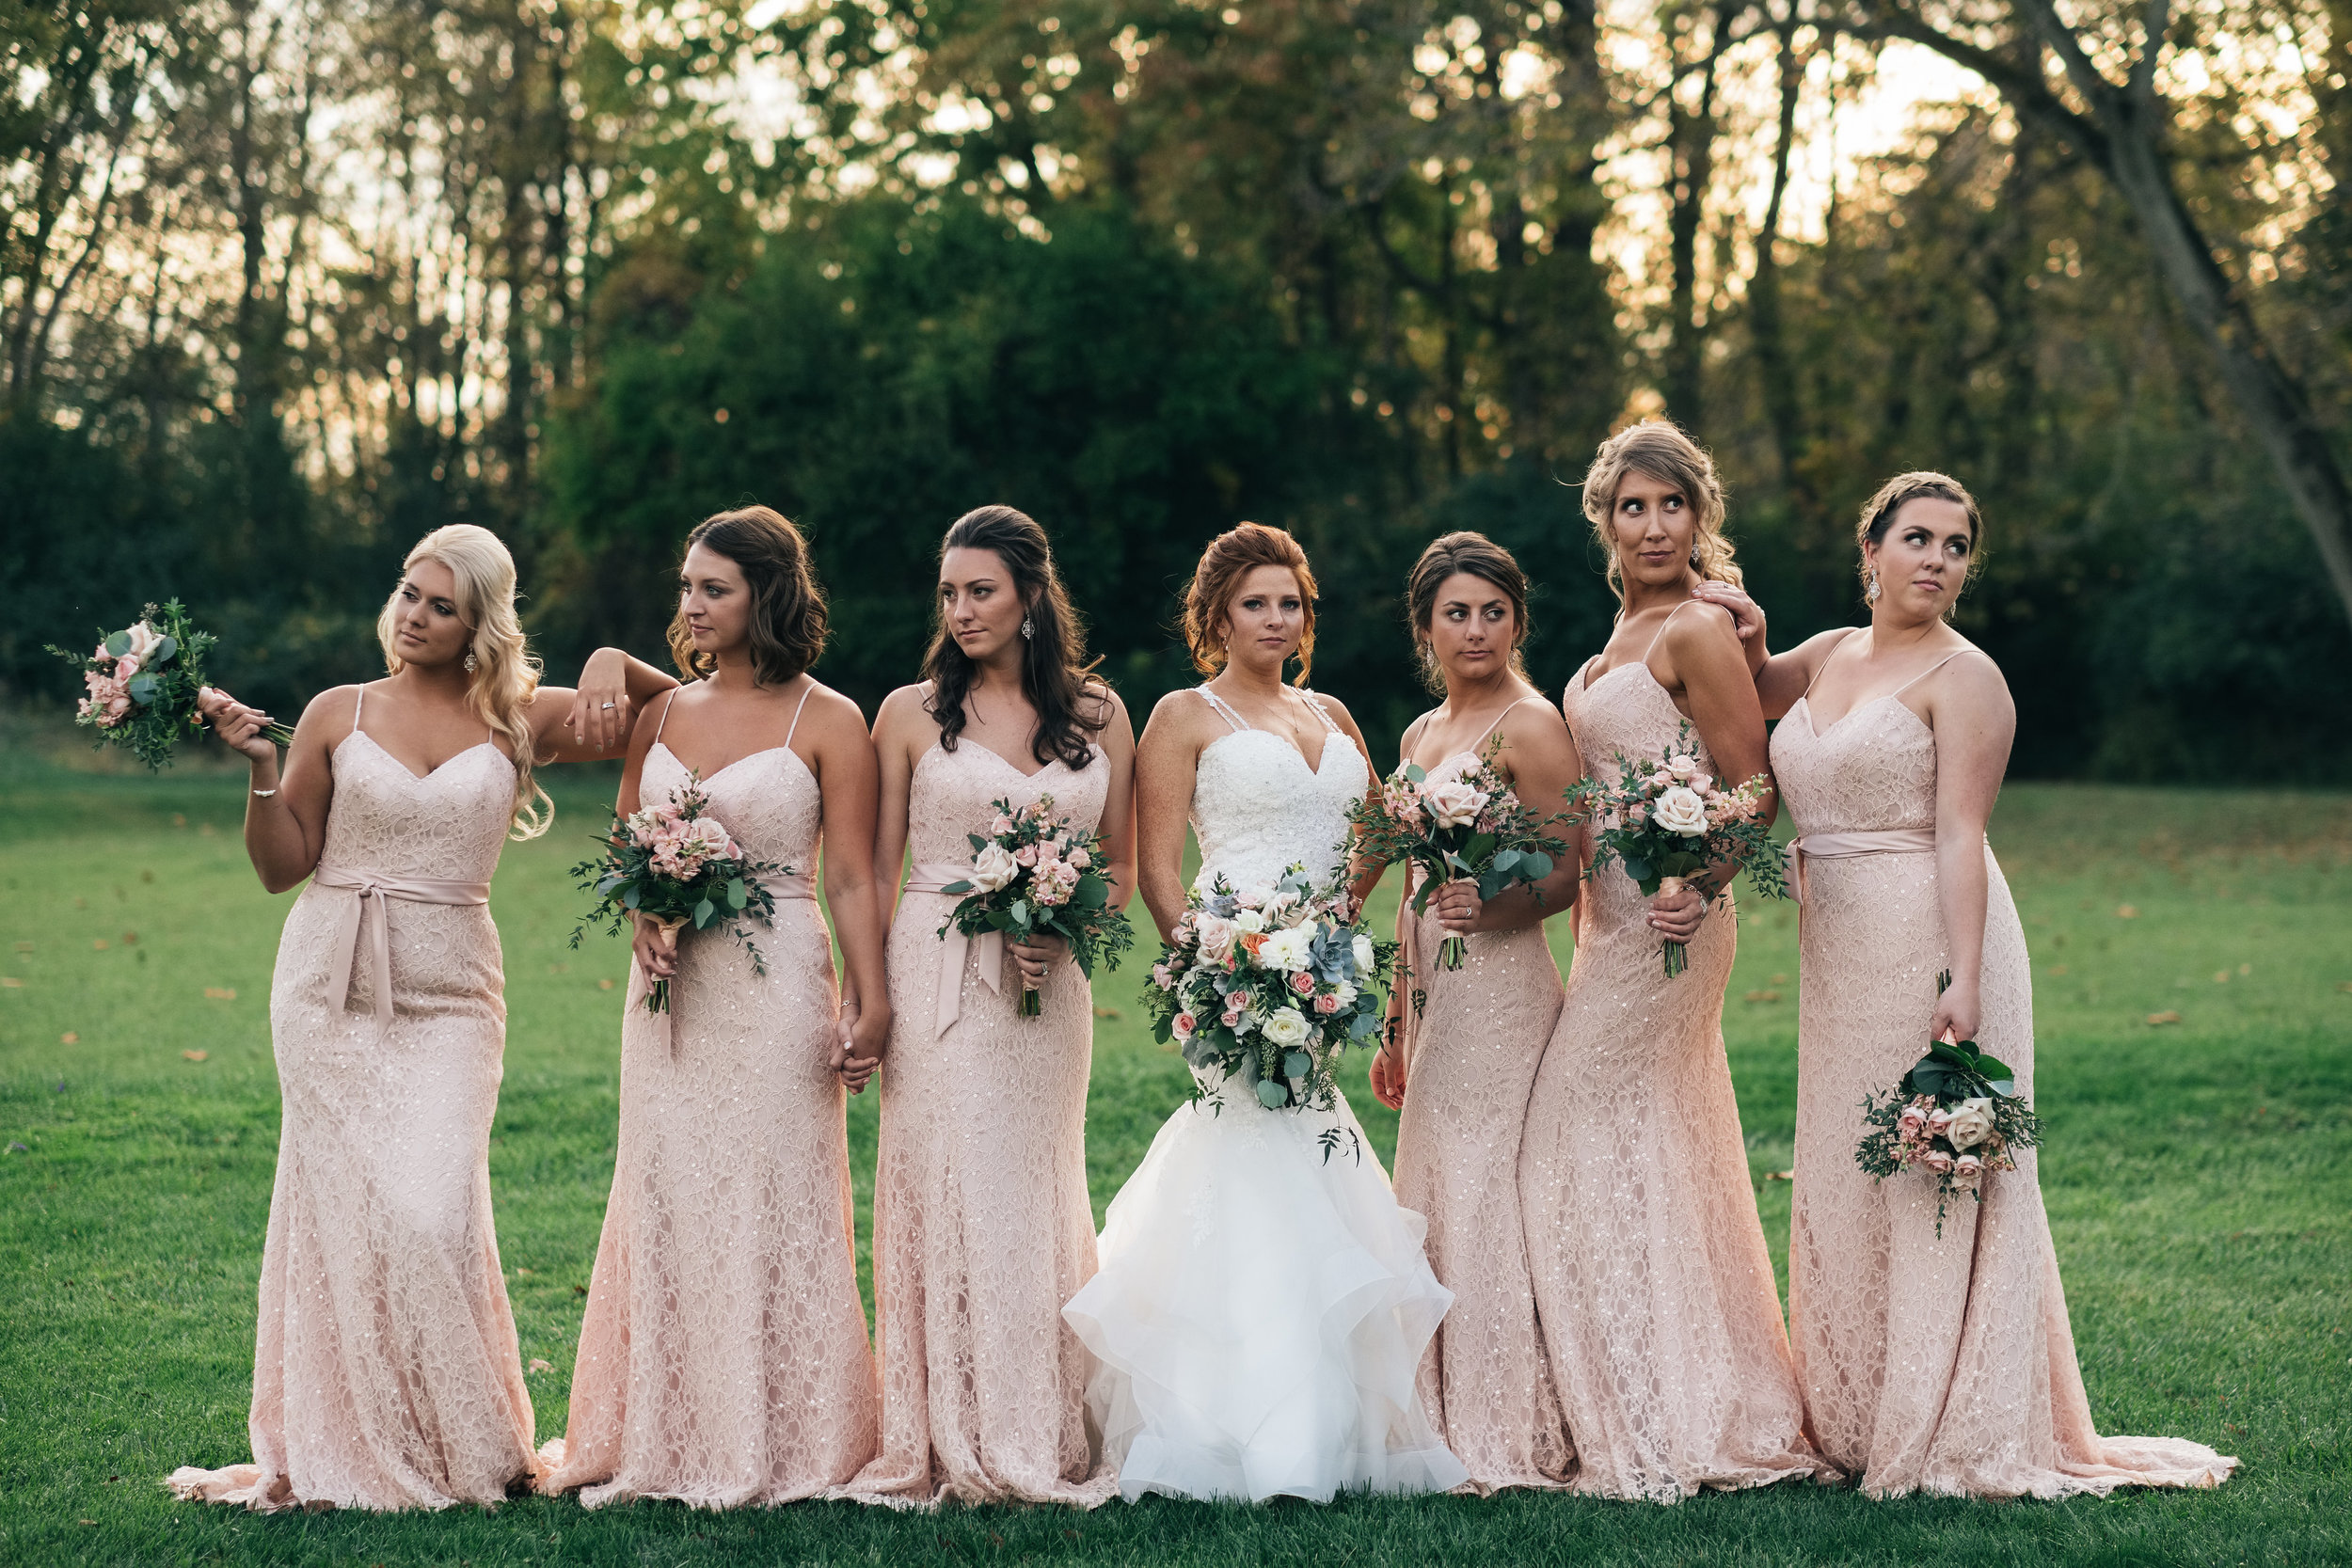 Outdoor Bridal Party Photo with Bridesmaids